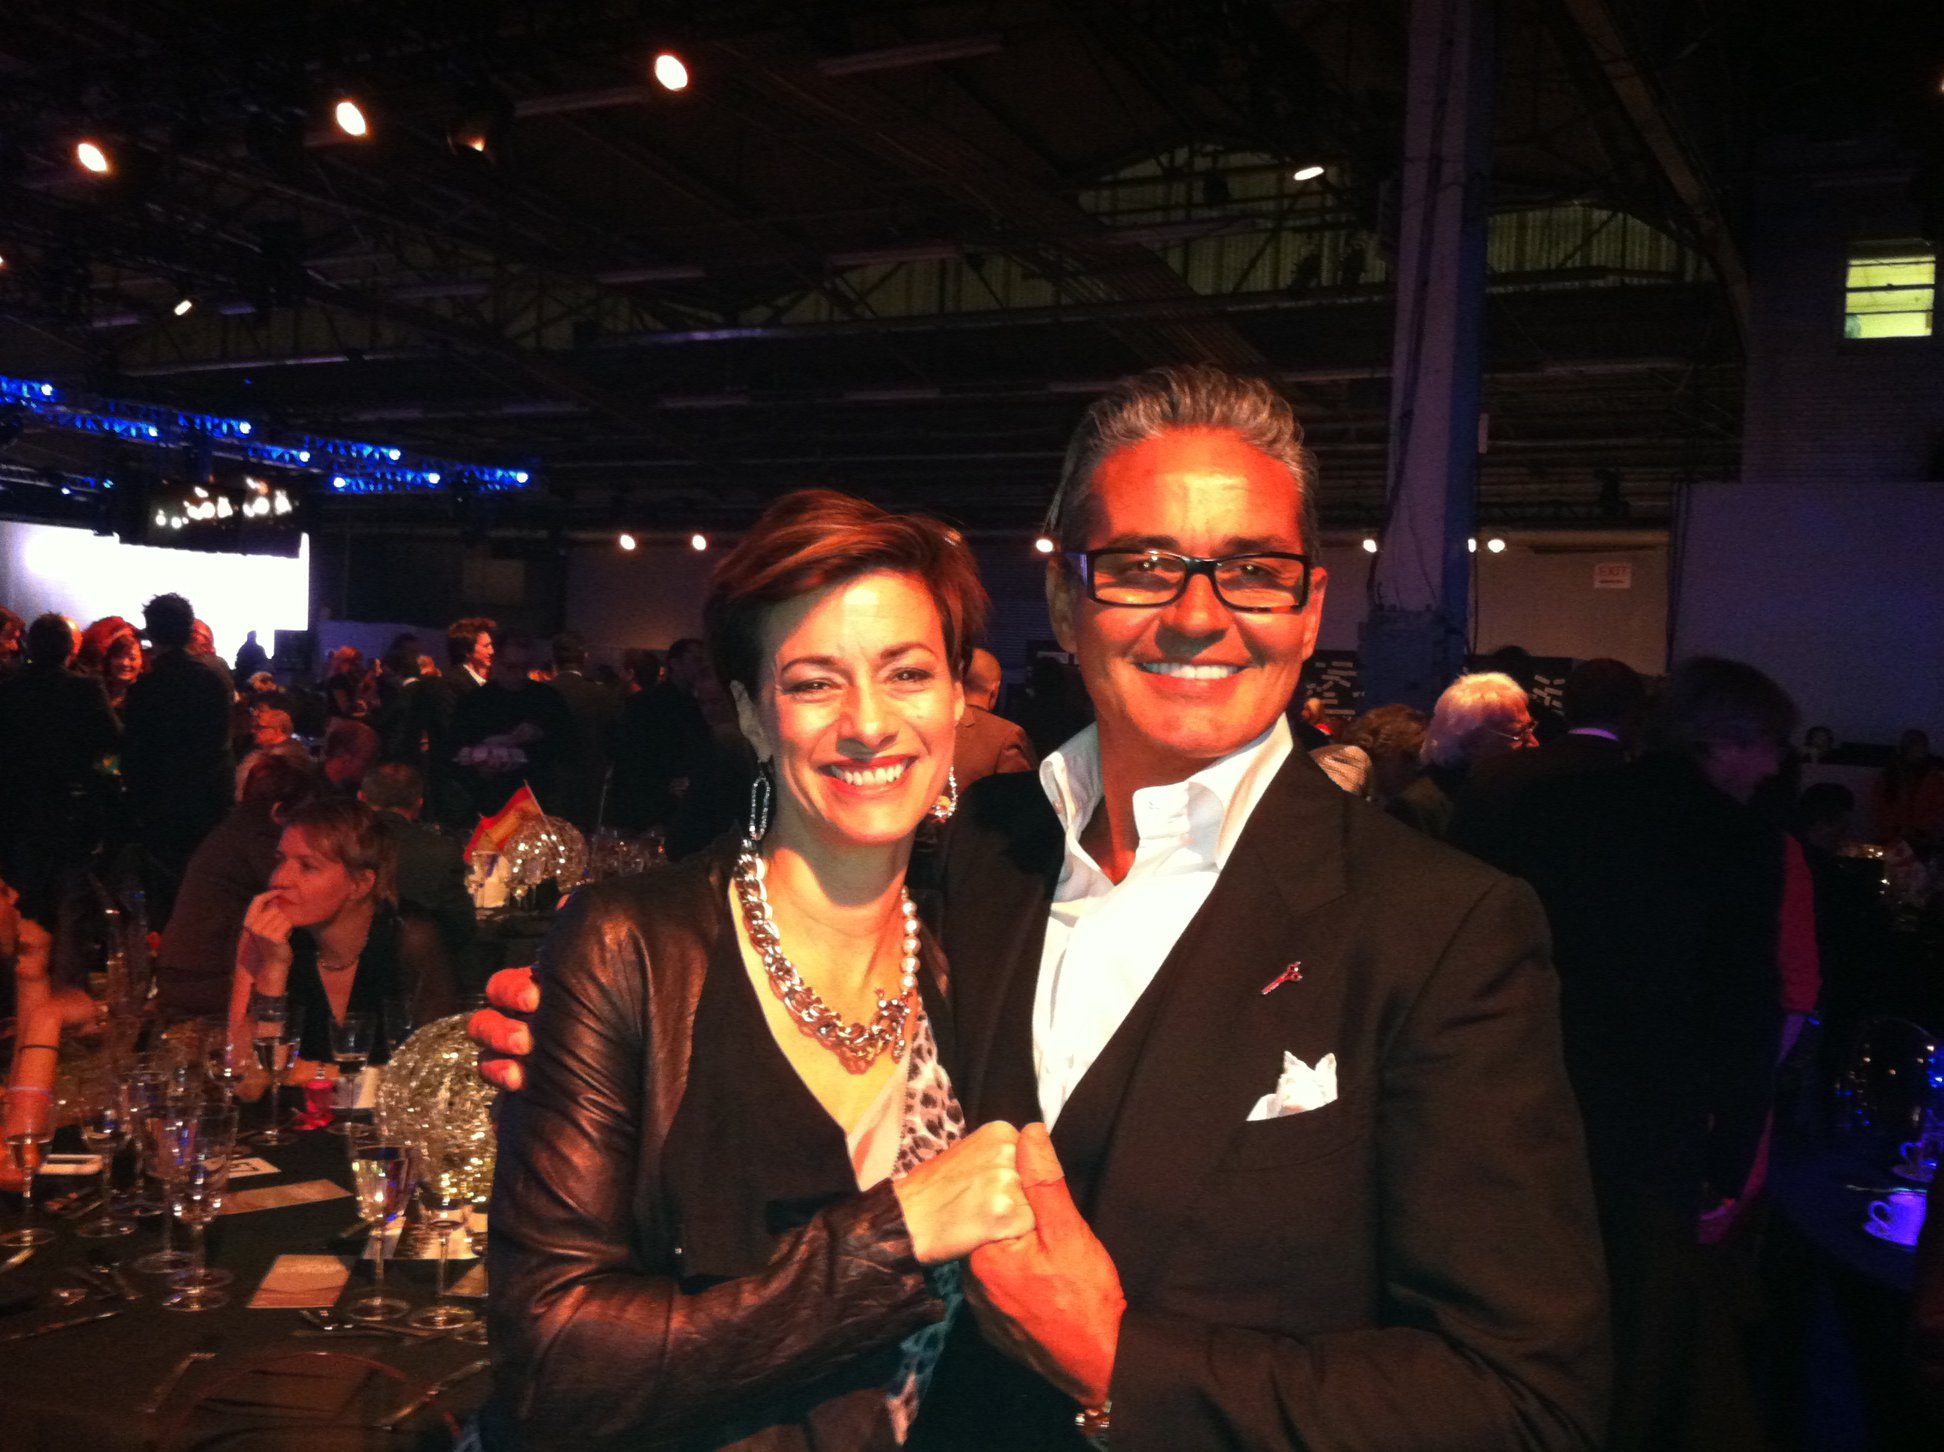 INTERLOCKS Owner Ginny Eramo with hairstyling legend Oribe Canales